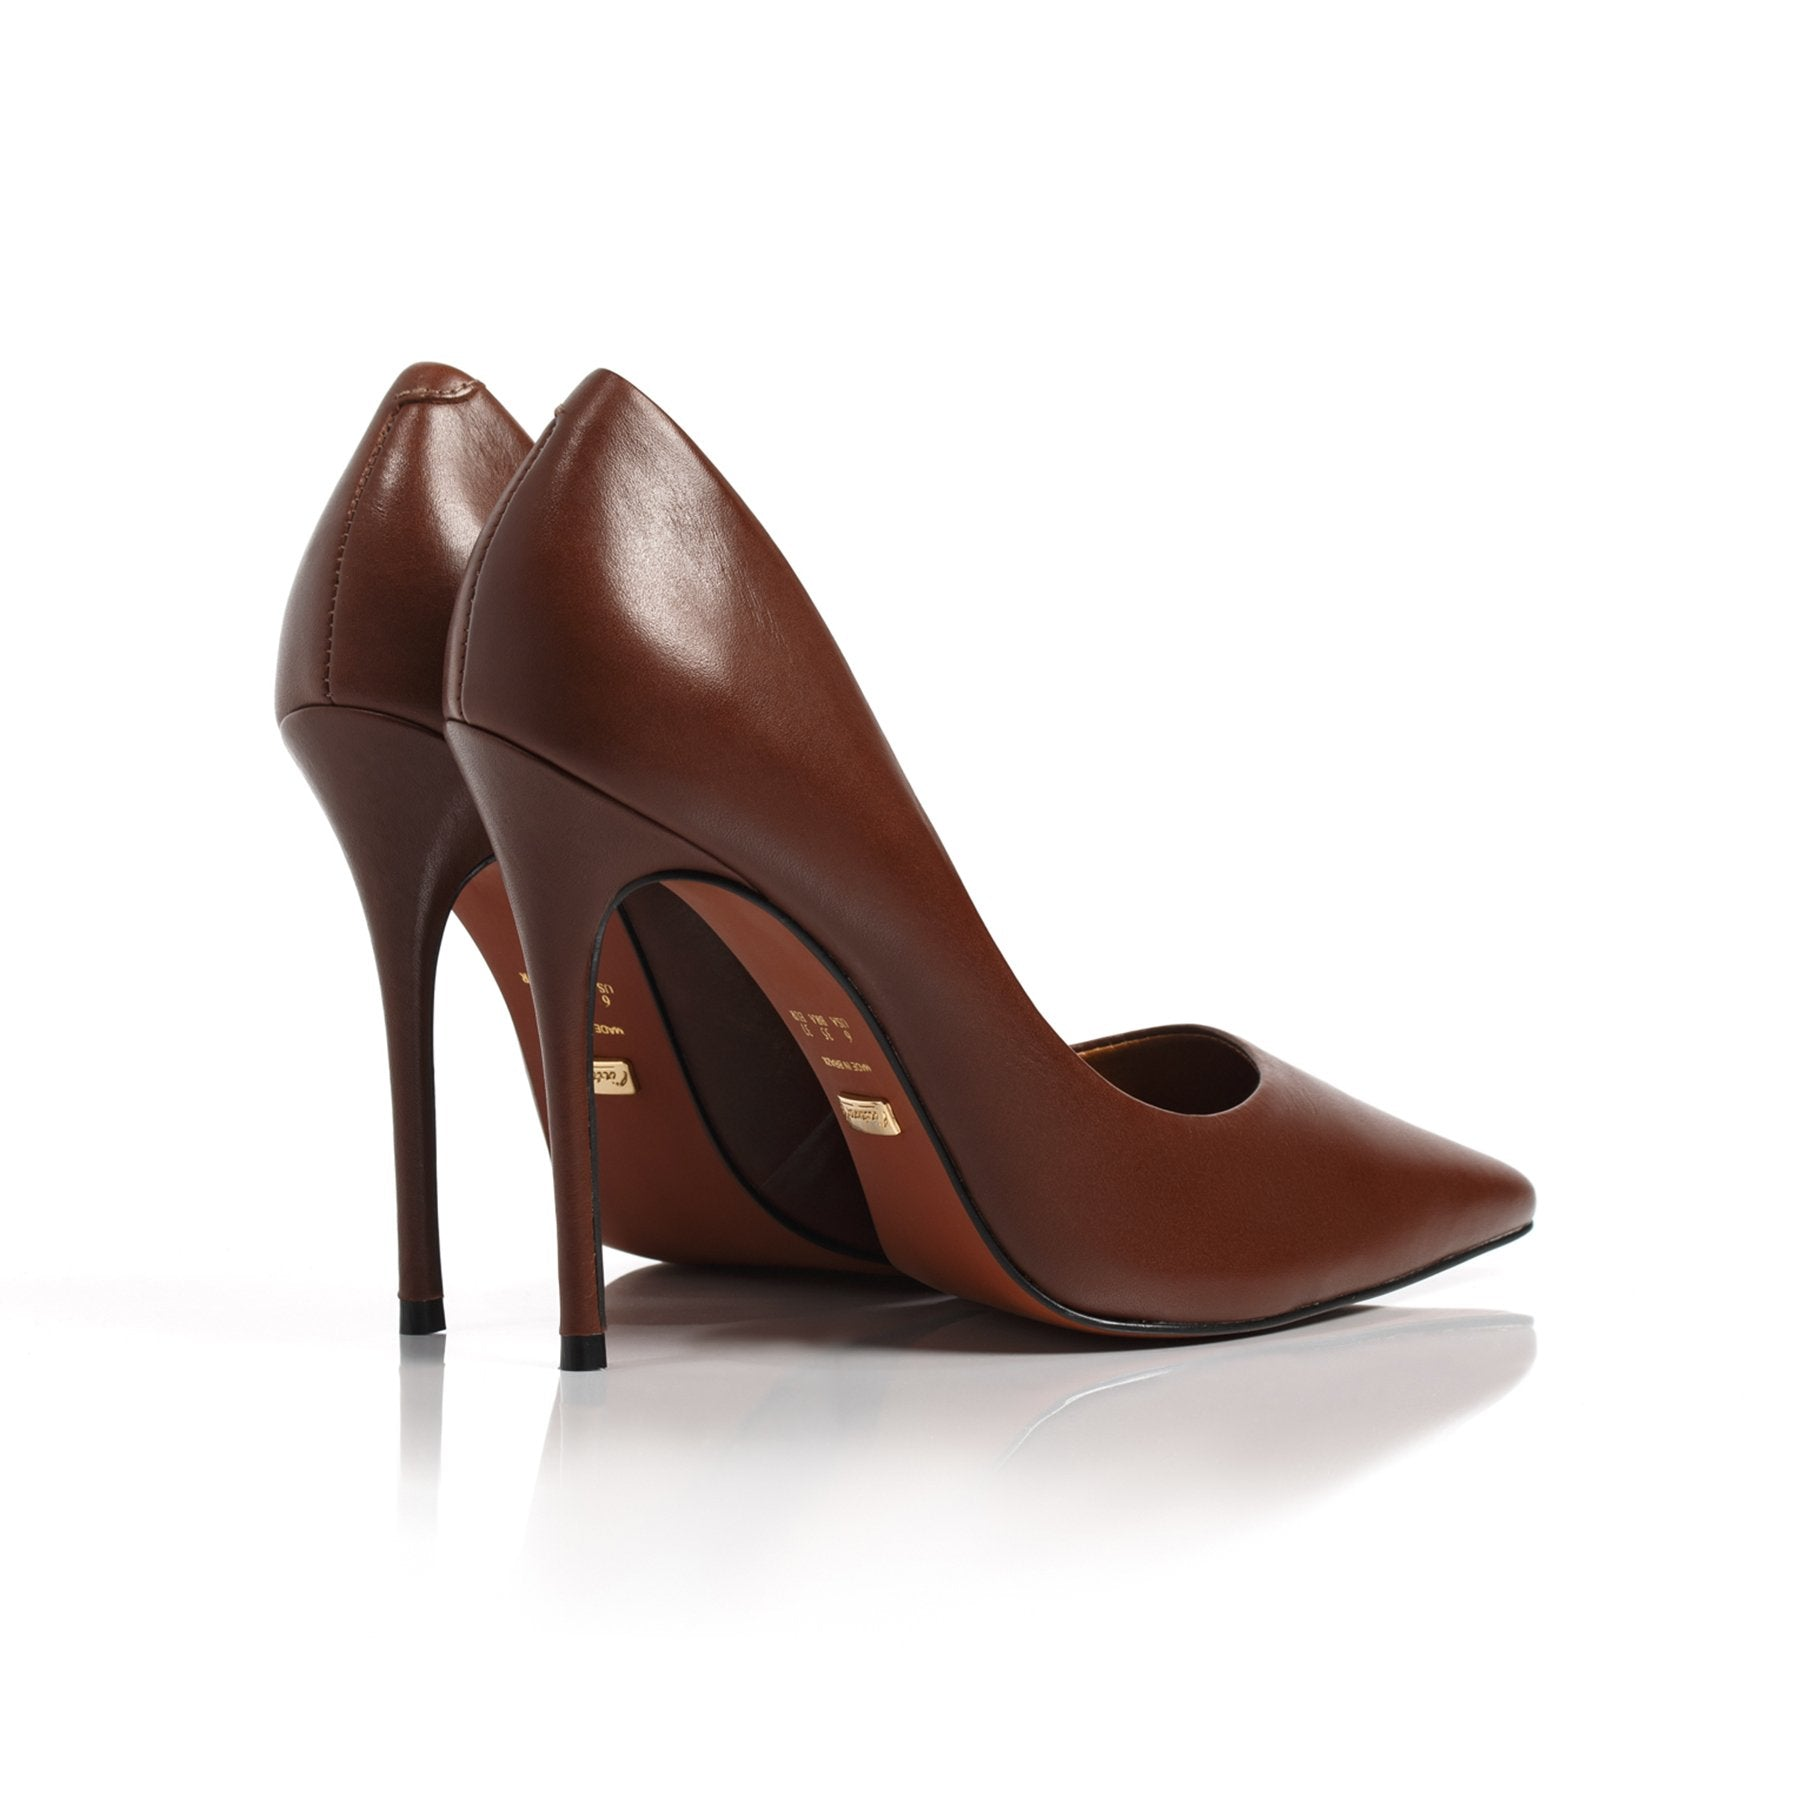 Teeva Brown Leather Pumps